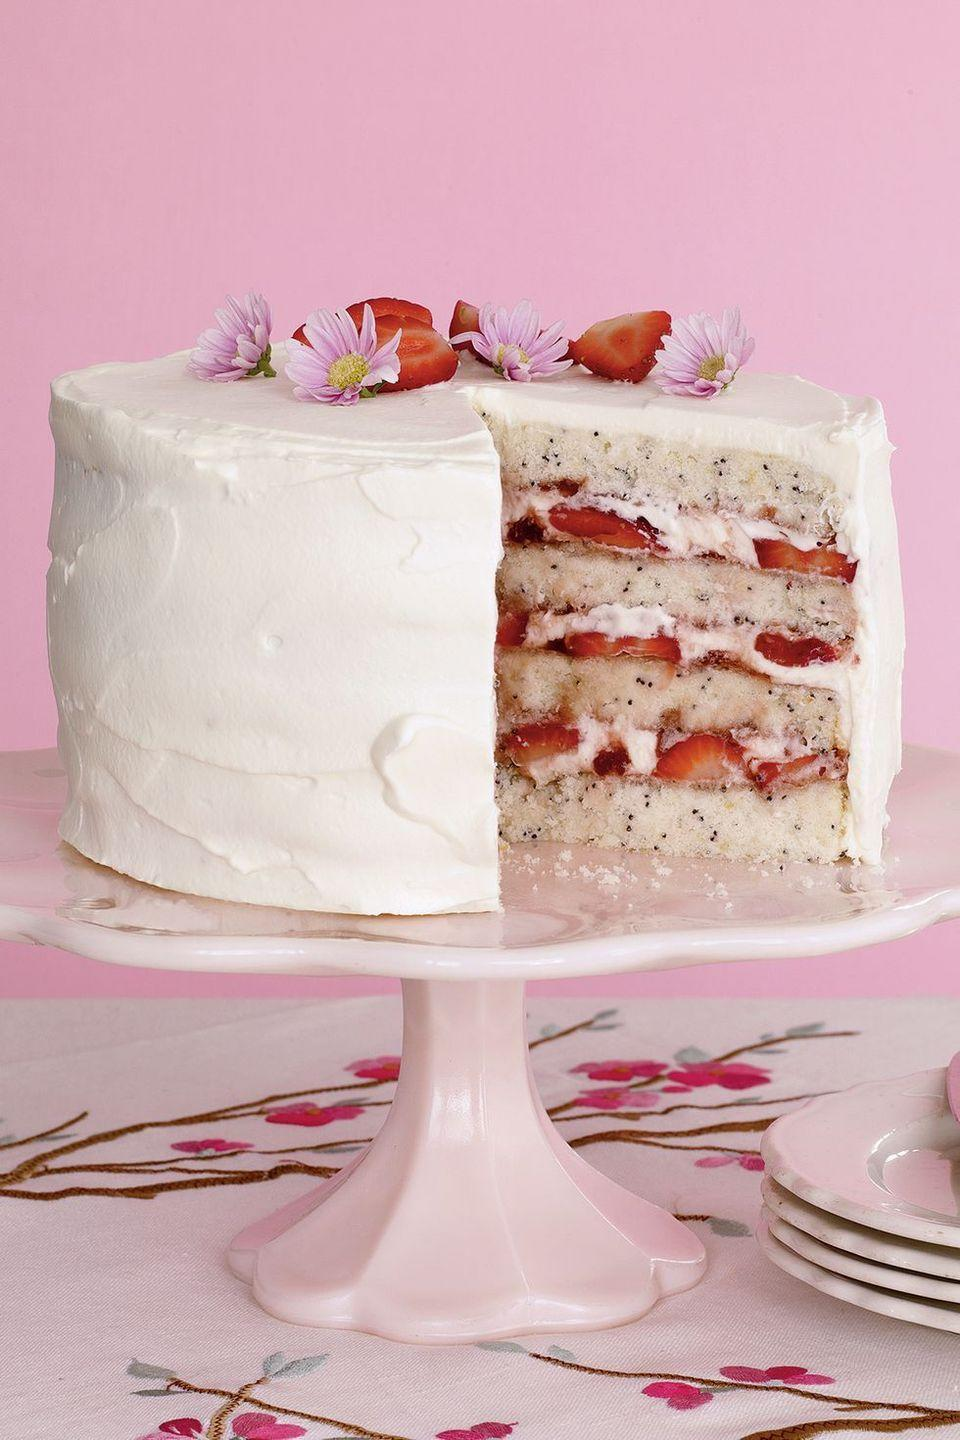 """<p>The fresh strawberries and cream holding this lemon cake together makes it an elevated treat that will impress Mom with every bite. </p><p><em><a href=""""https://www.womansday.com/food-recipes/food-drinks/recipes/a10913/lemon-poppy-seed-cake-strawberries-recipe-122355/"""" rel=""""nofollow noopener"""" target=""""_blank"""" data-ylk=""""slk:Get the recipe for Woman's Day »"""" class=""""link rapid-noclick-resp"""">Get the recipe for Woman's Day »</a></em></p>"""